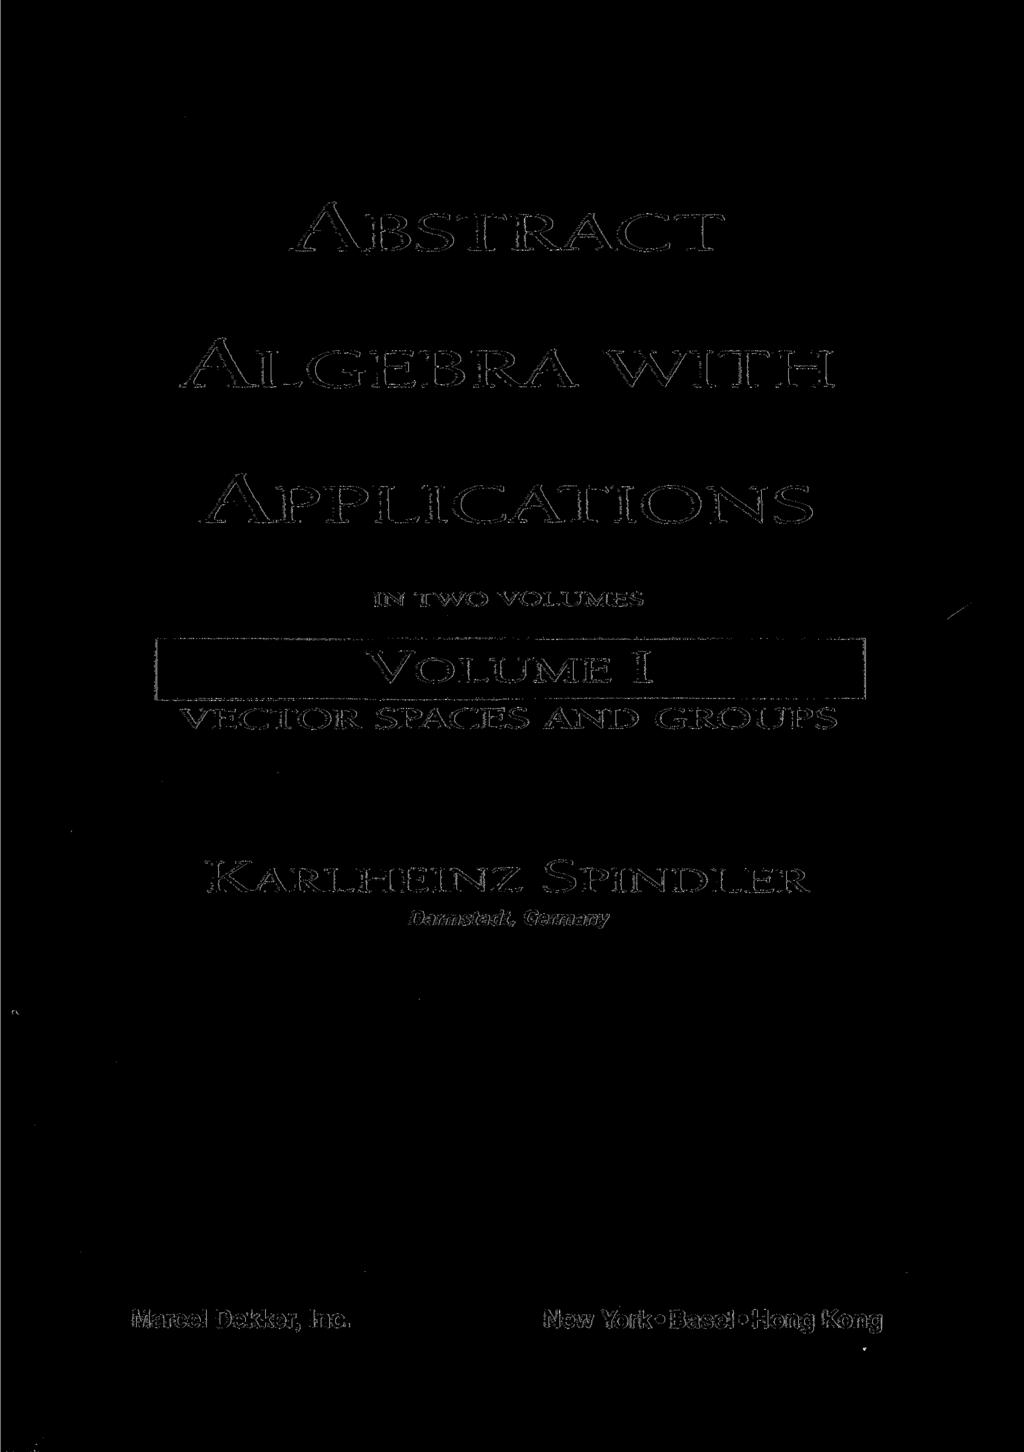 ABSTRACT ALGEBRA WITH APPLICATIONS IN TWO VOLUMES VOLUME I VECTOR SPACES AND